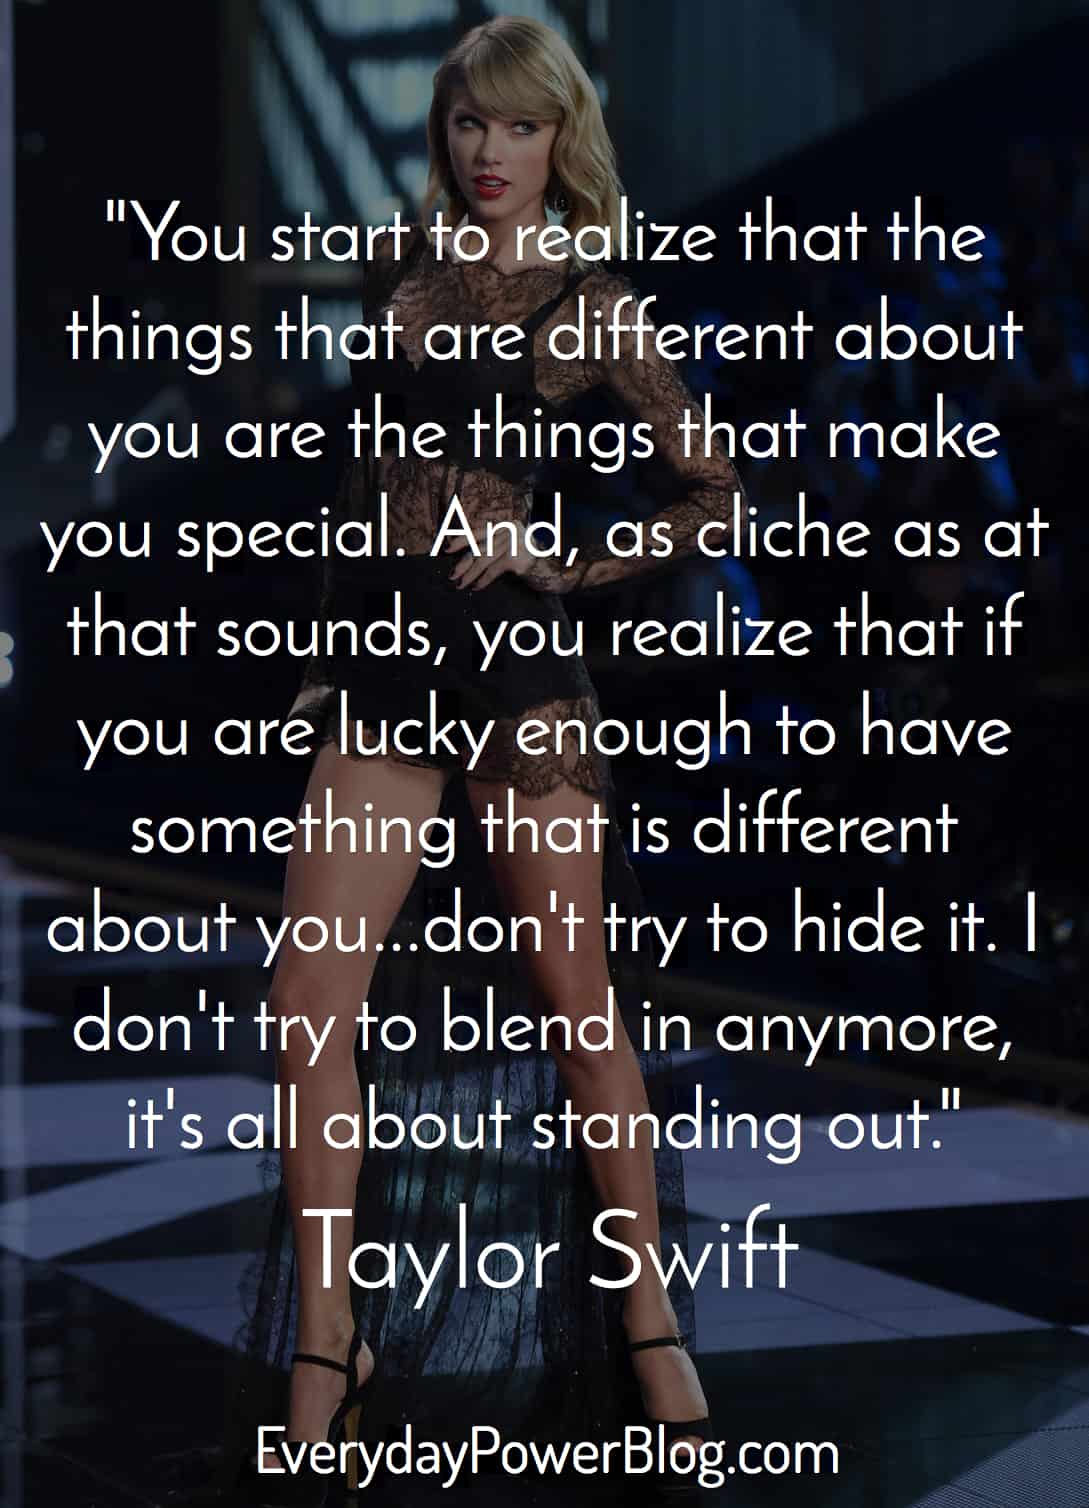 Bad Blood Quotes Taylor Swift Inspirational Taylor Swift Quotes About Loving Yourself 2019